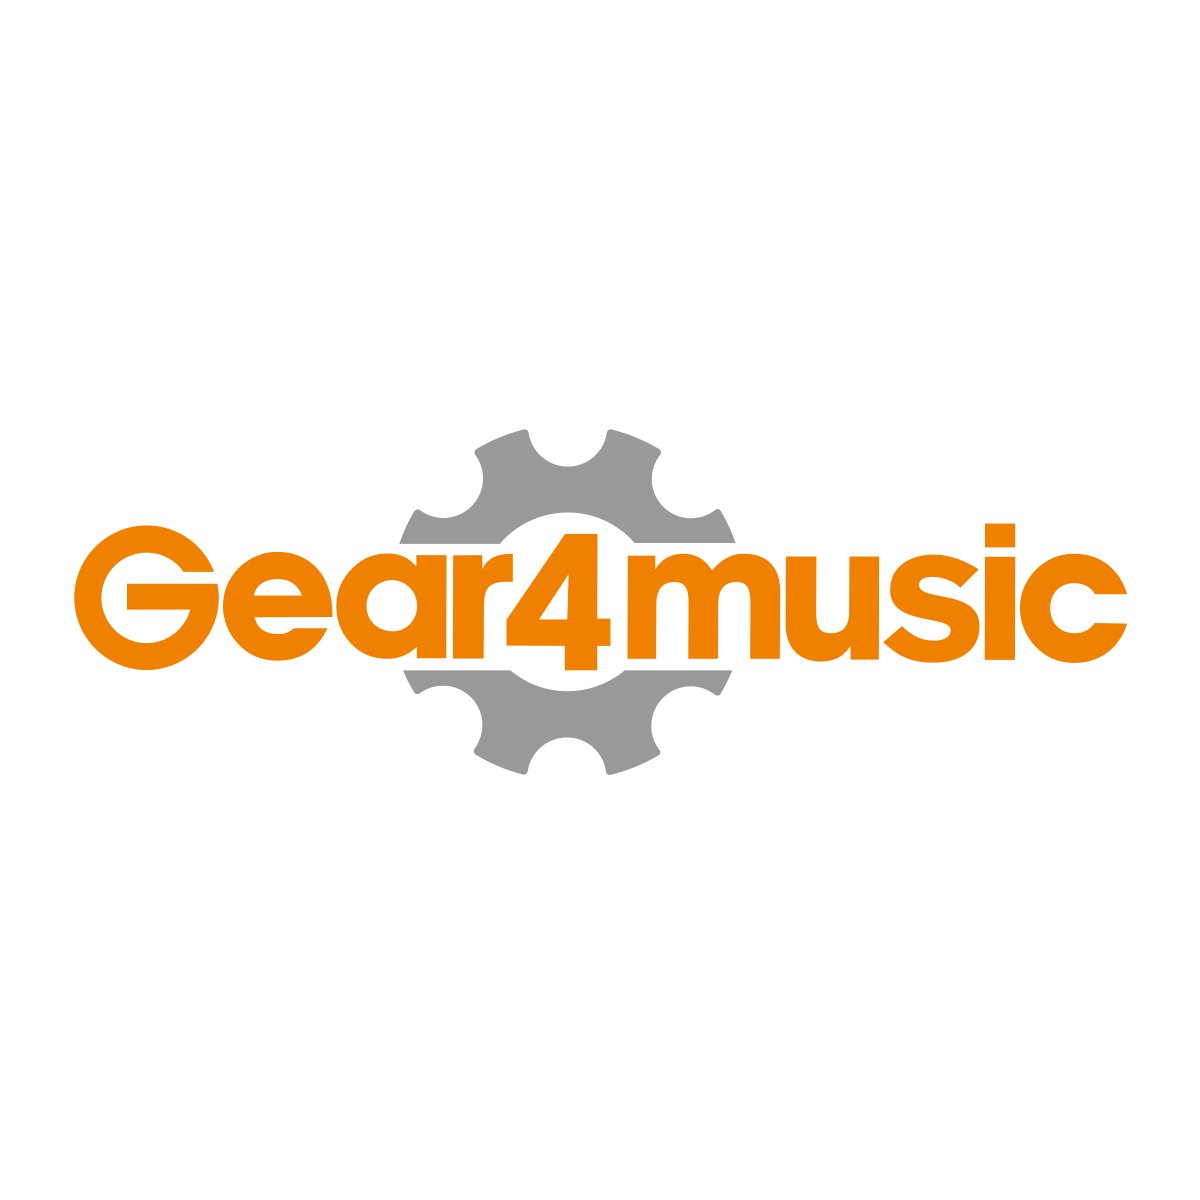 Pied Perche de micro  par Gear4music